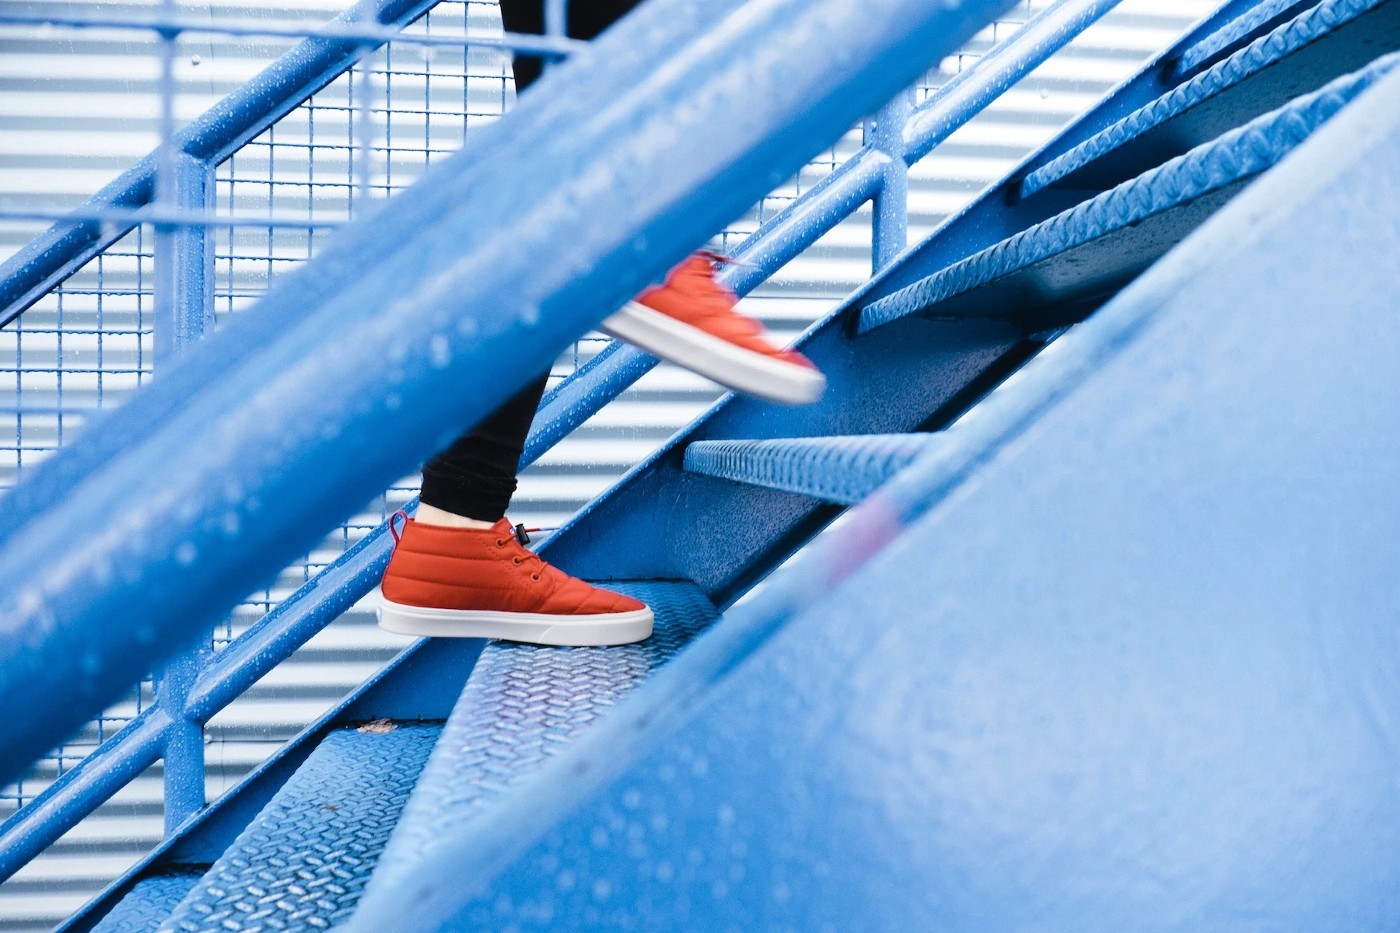 Walking on blue stairs